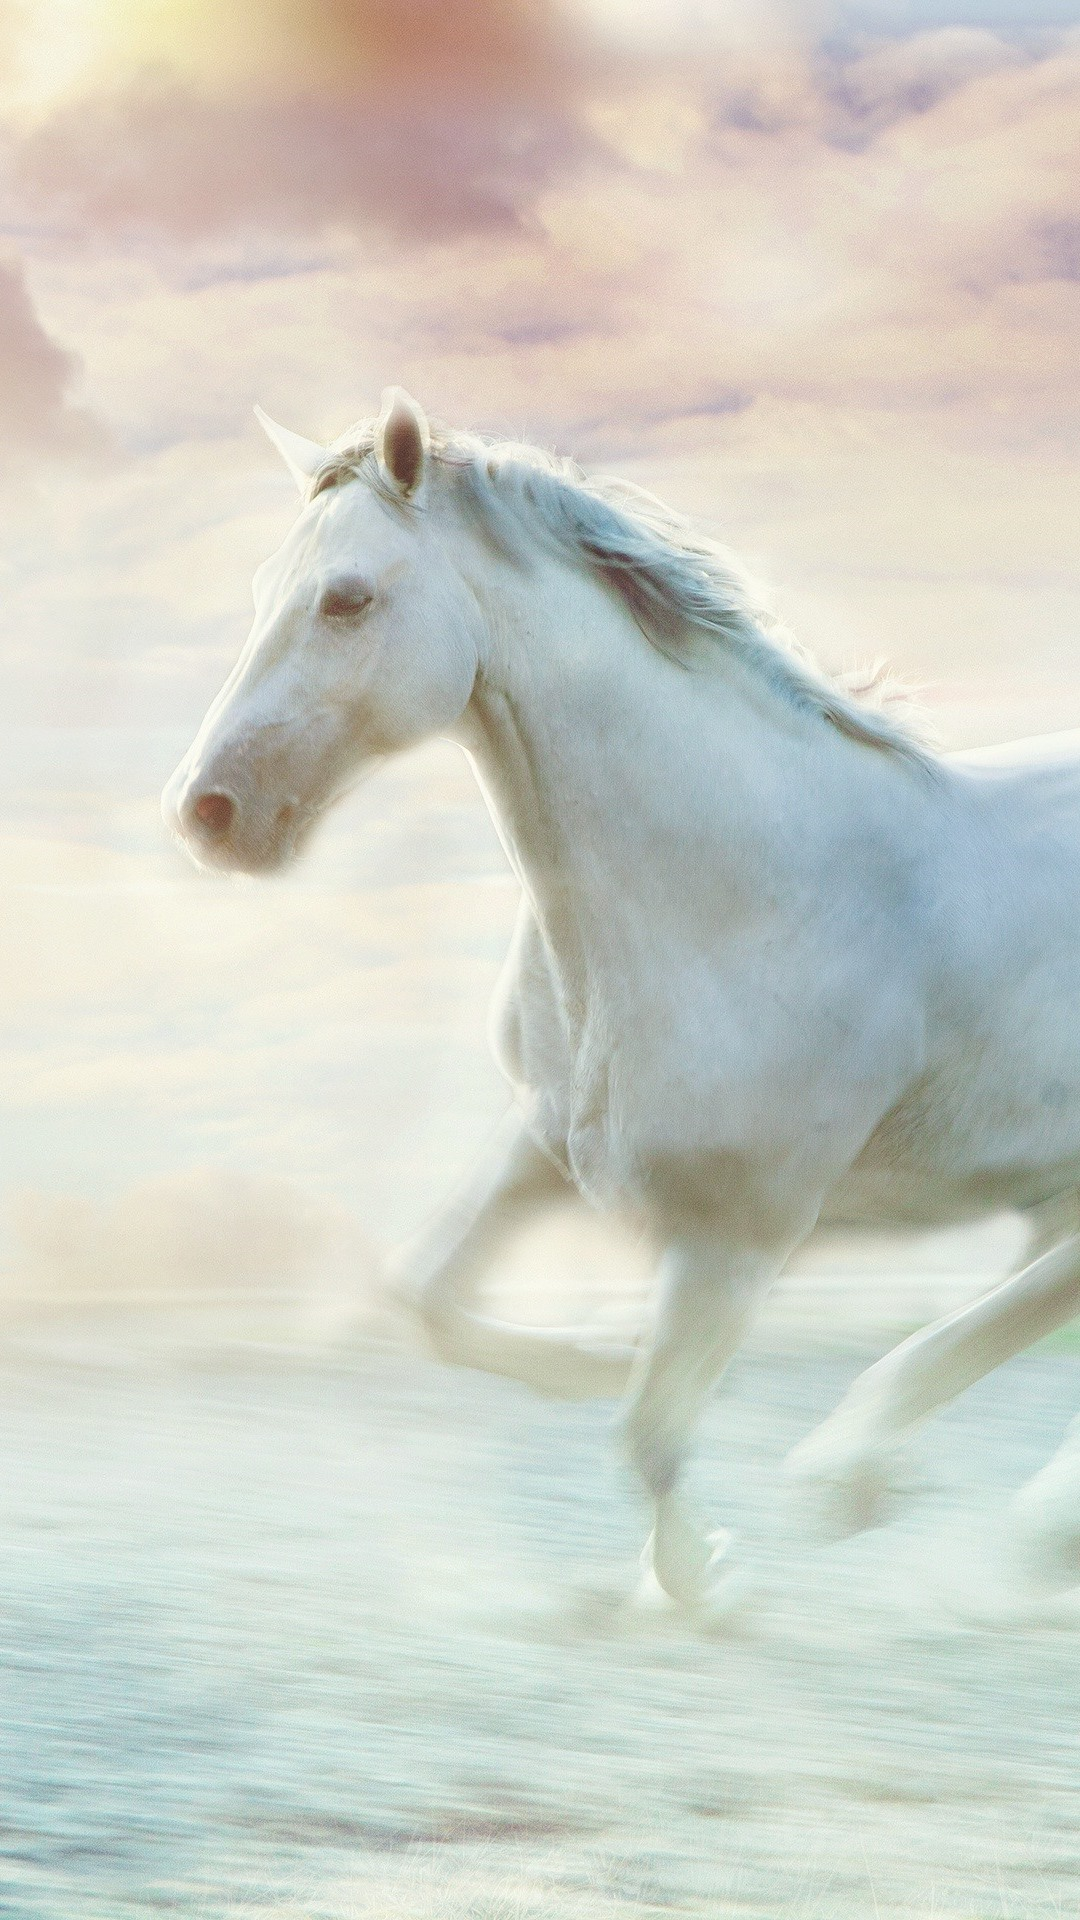 White Horse Running Water Art Picture 1080x1920 Iphone 8766s